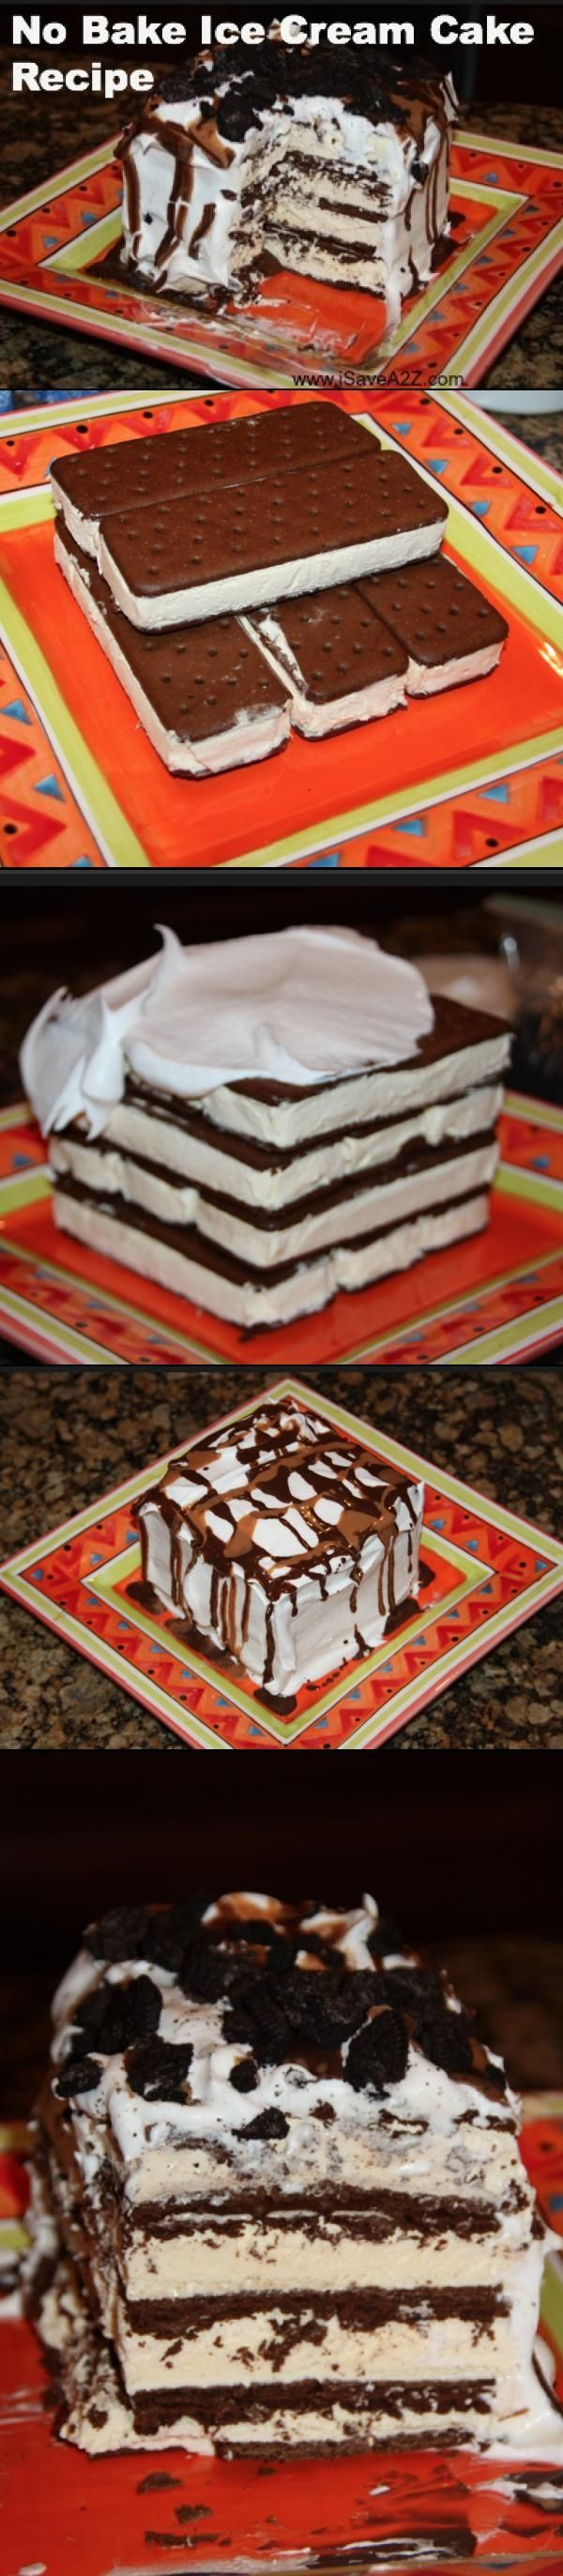 Ice Cream Sandwich Cake Recipe No Baking required! - iSaveA2Z